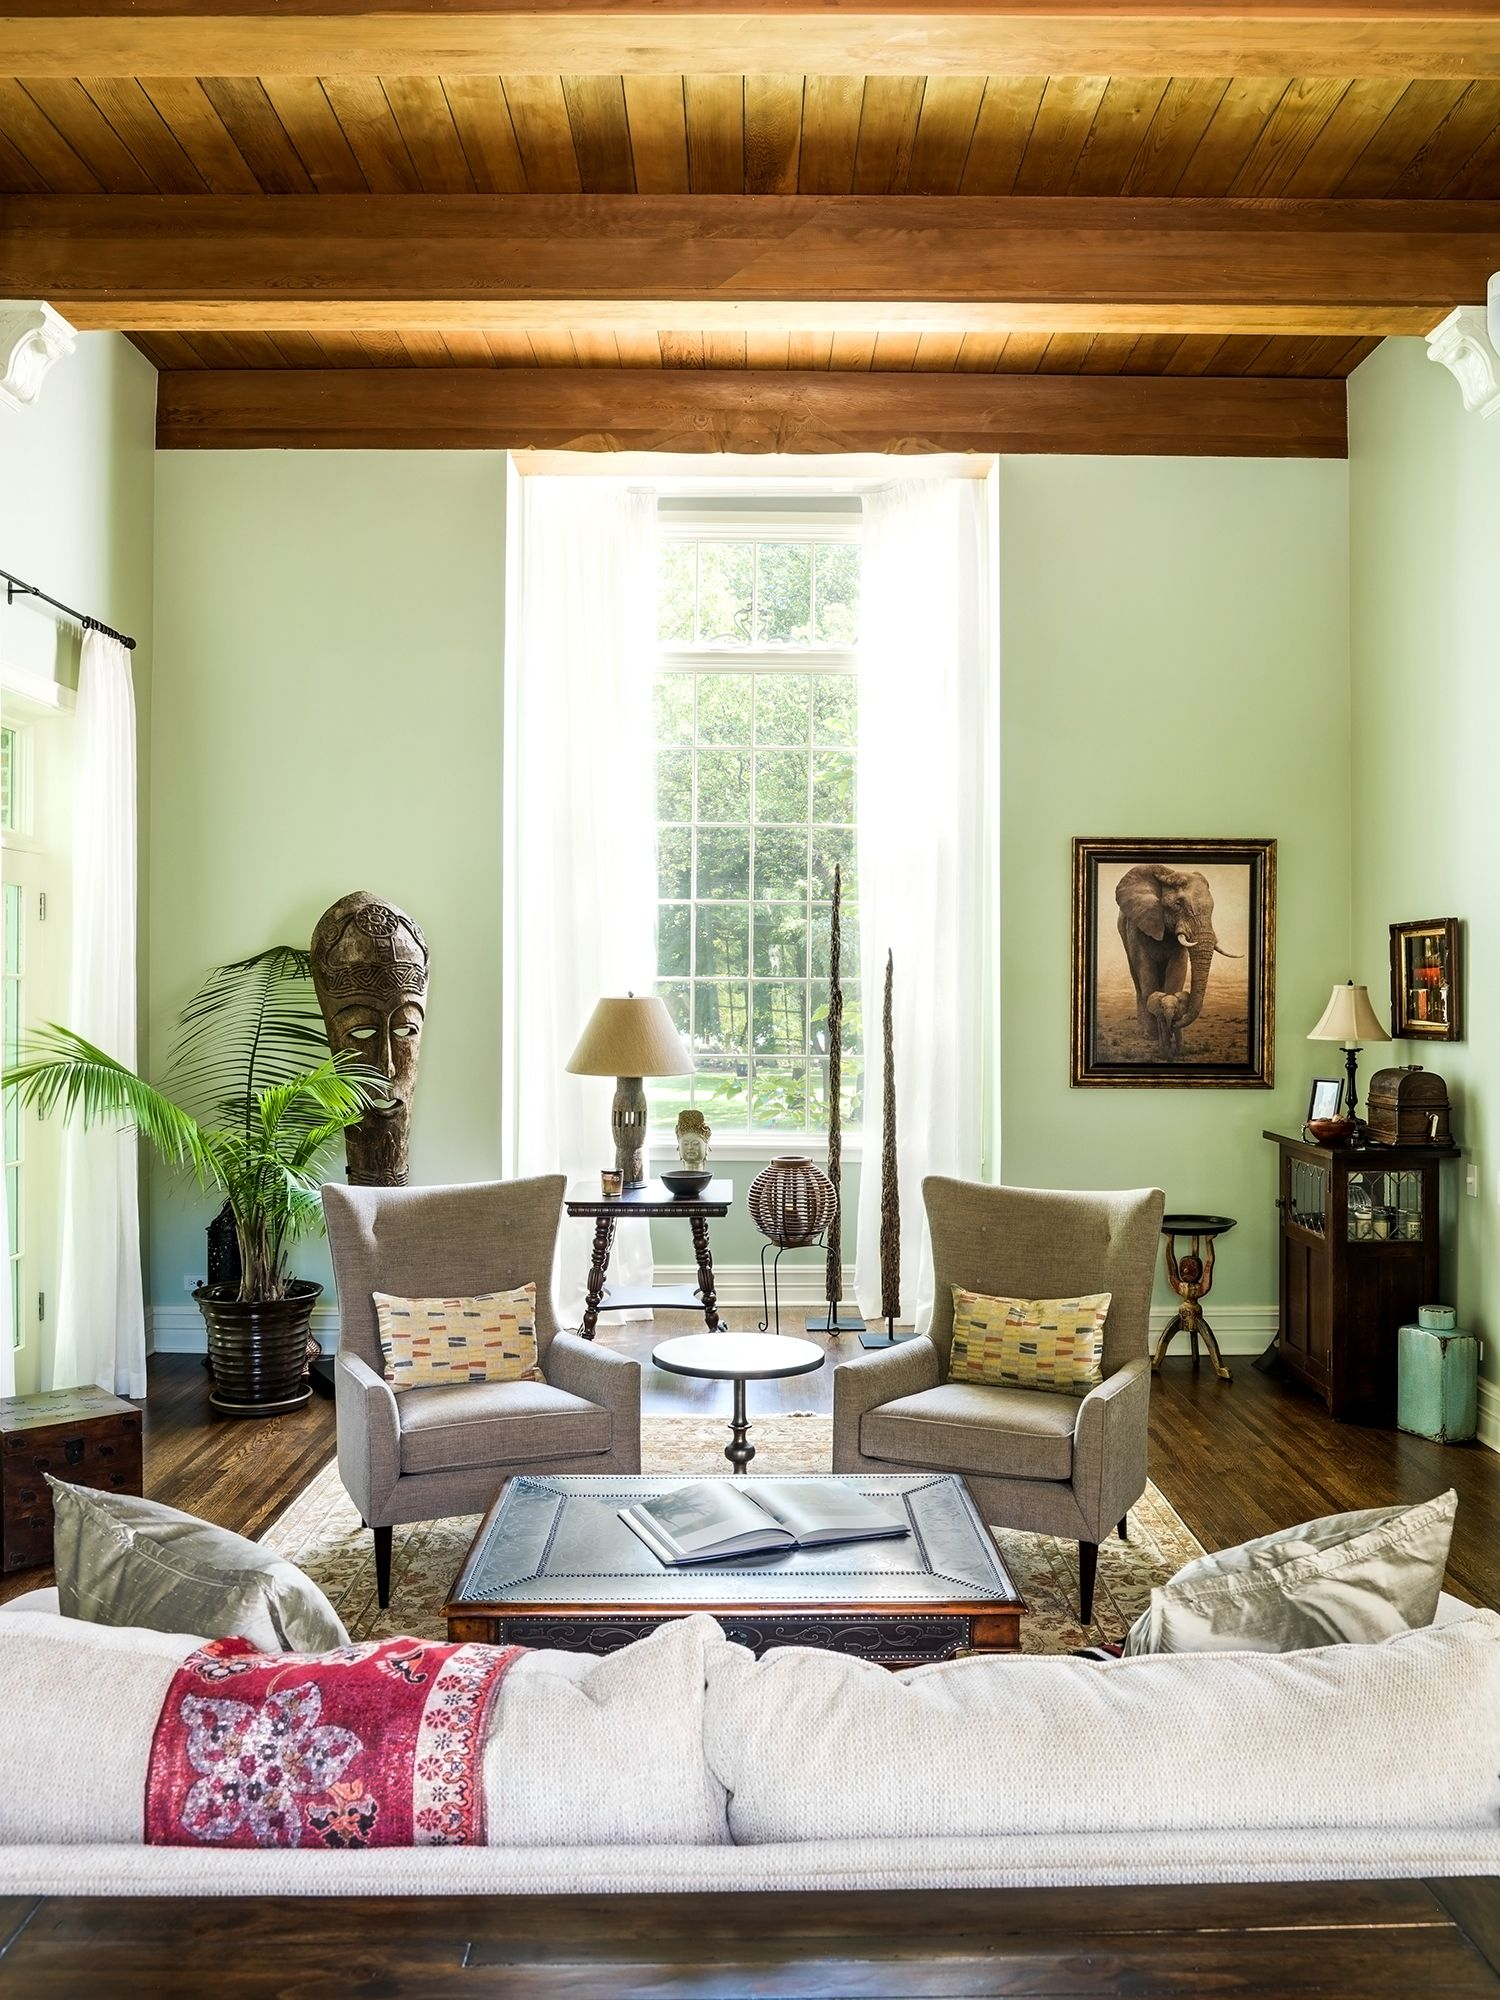 What makes colors cool in interior design? The Best Paint Colors For 2021 2021 Paint Color Trends